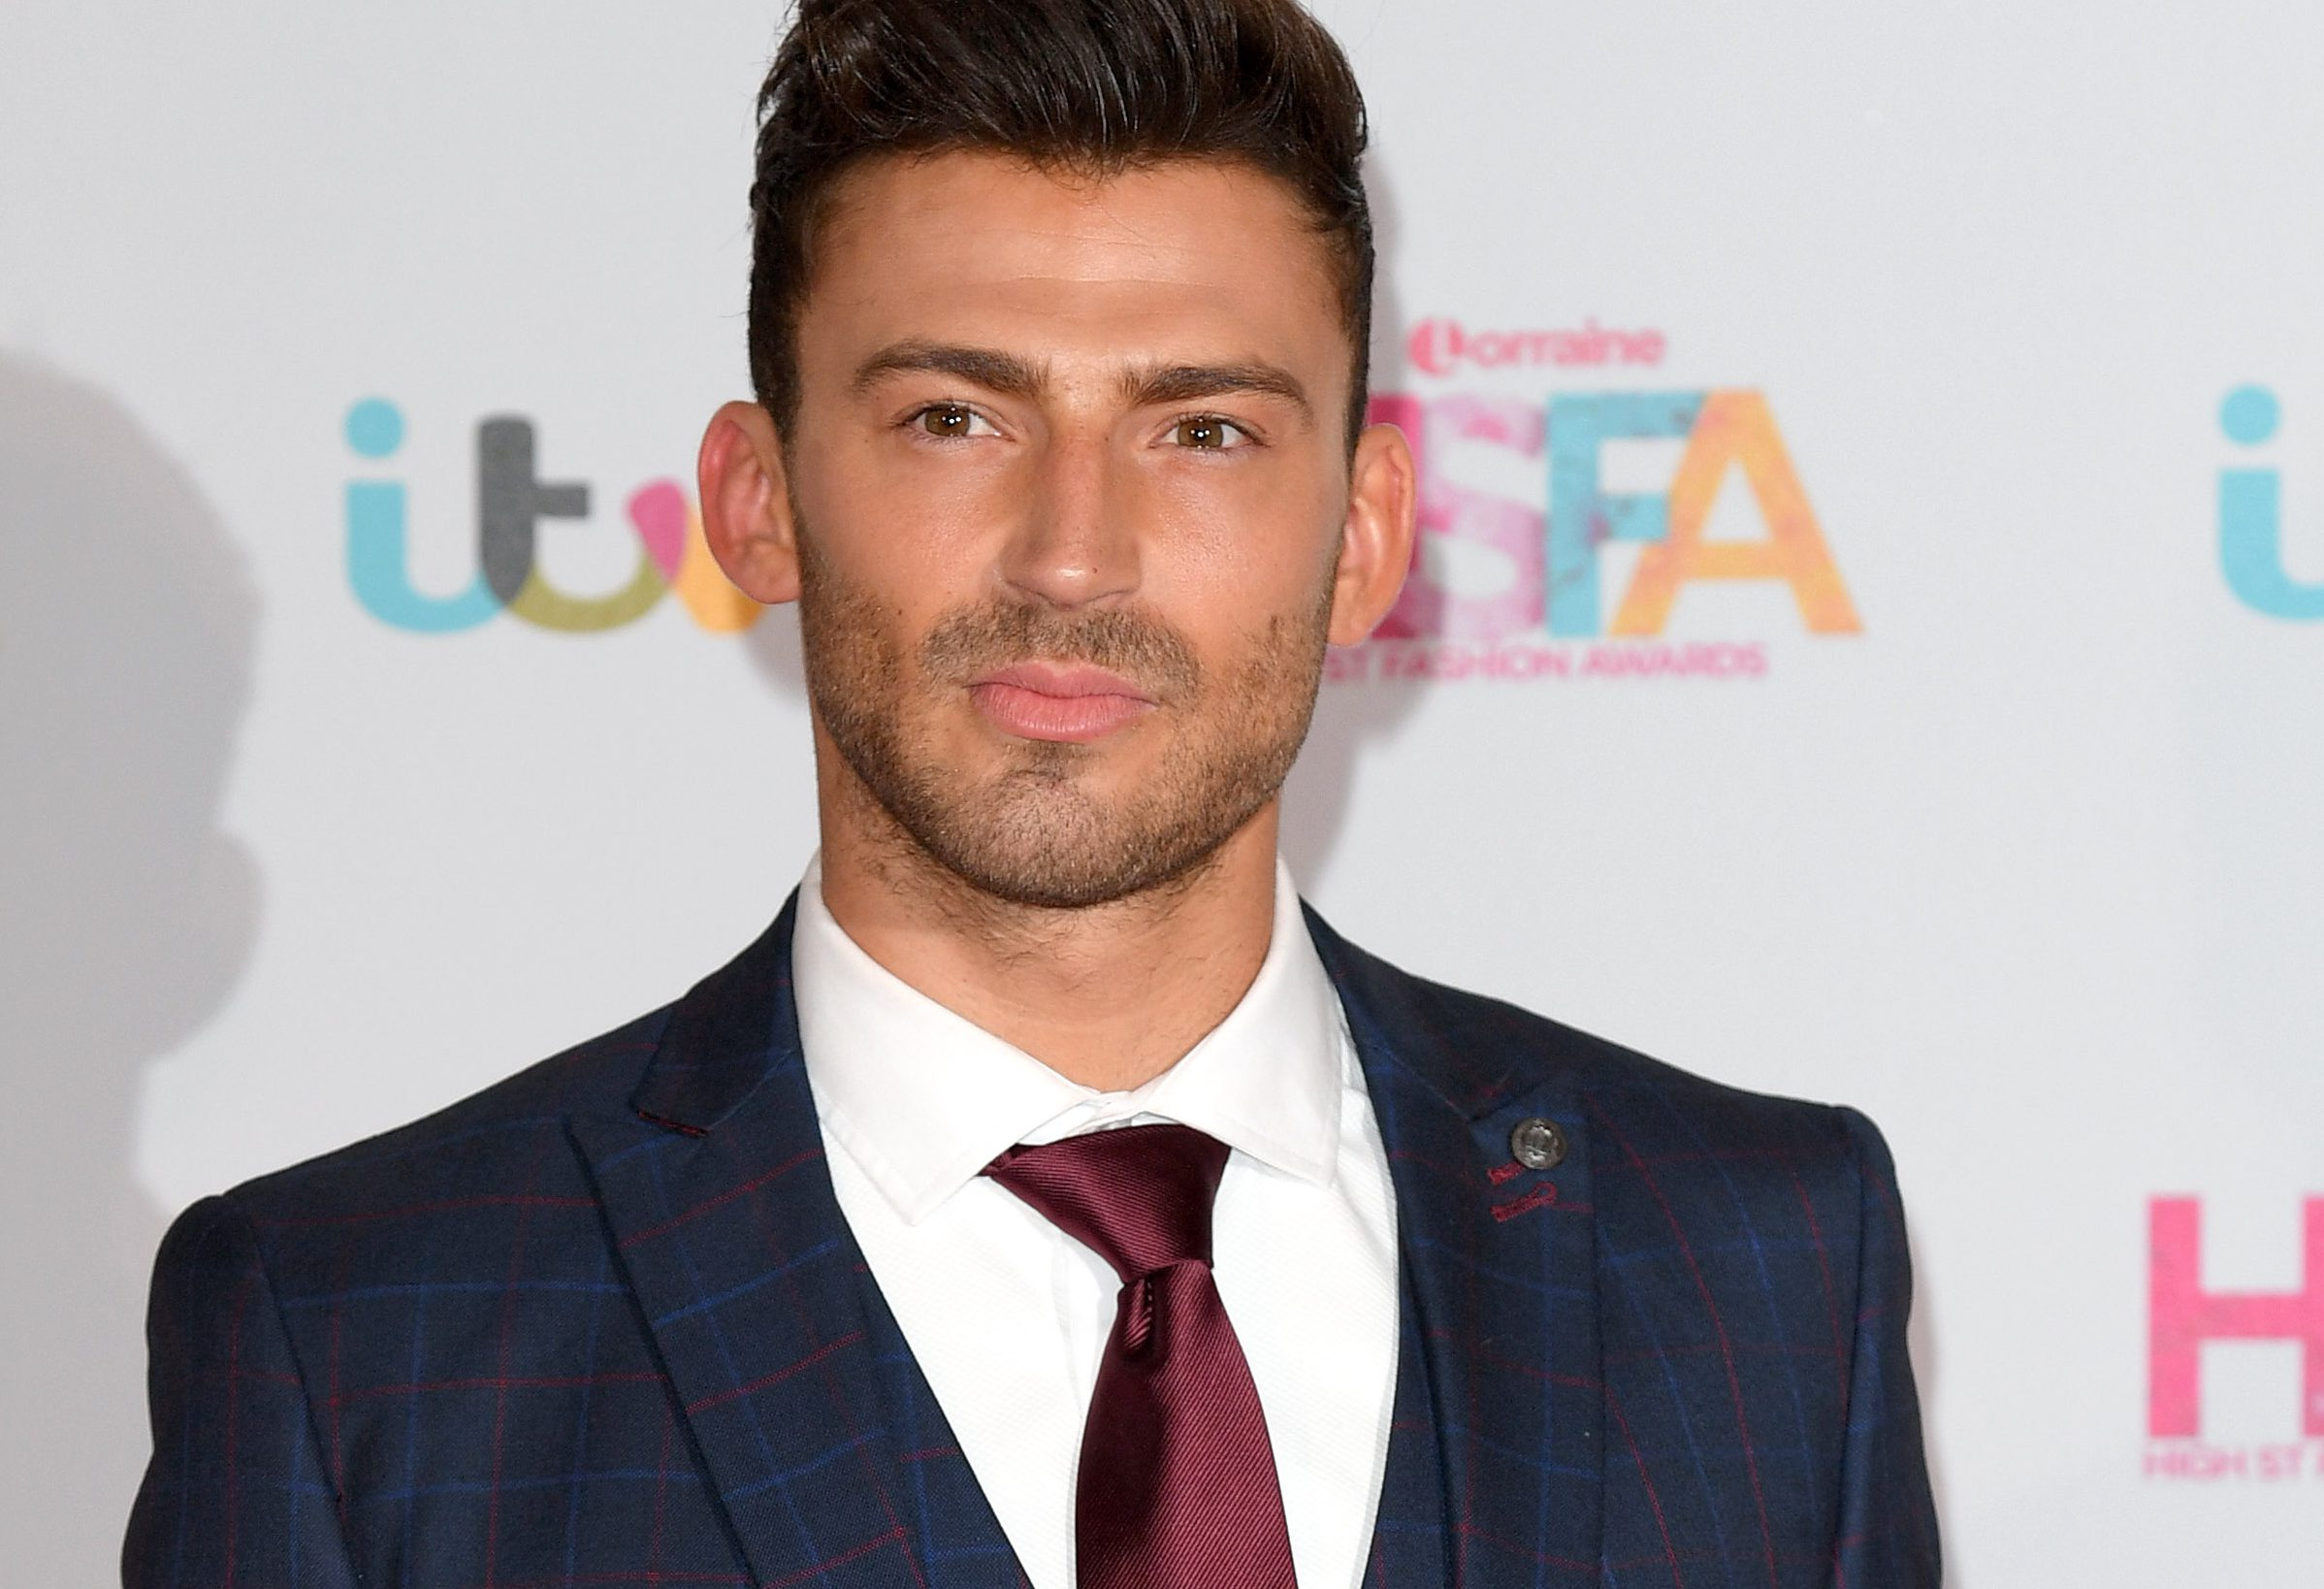 Jake Quickenden drank to numb the pain of losing his father and brother to cancer